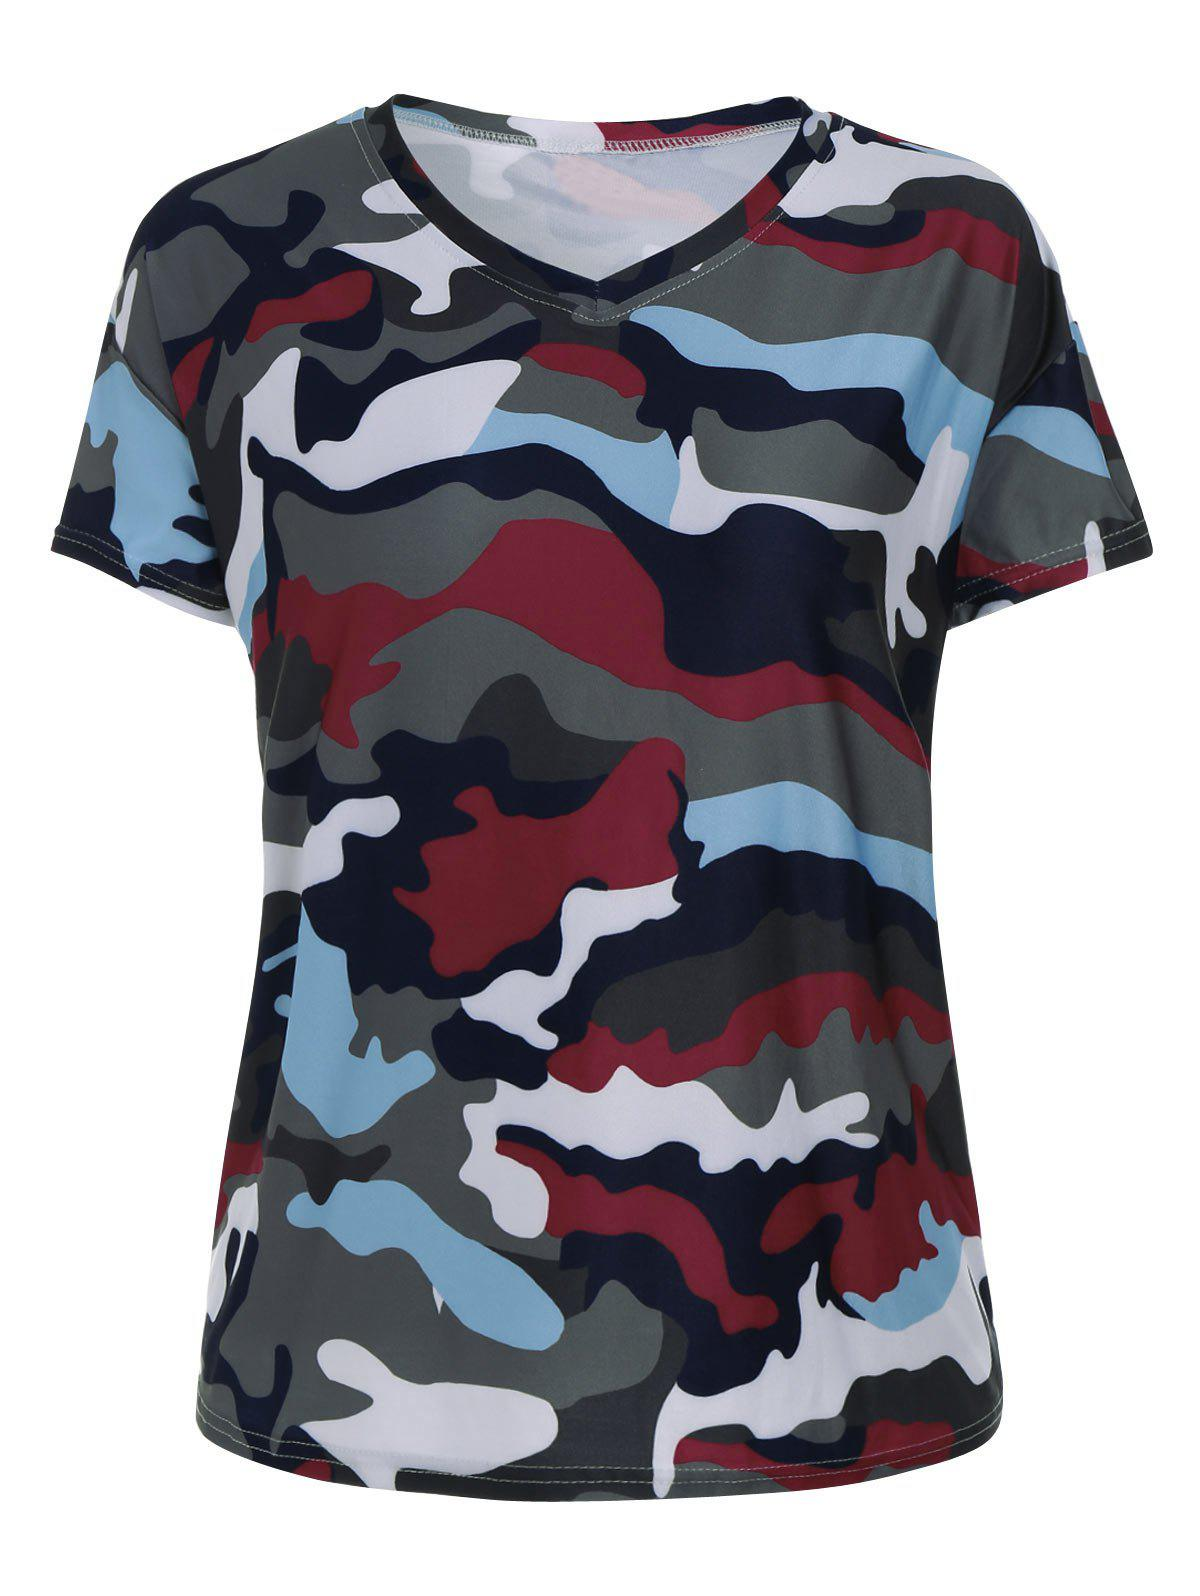 Acu camouflage 5xl plus size v neck camouflage print t for Camouflage t shirt printing